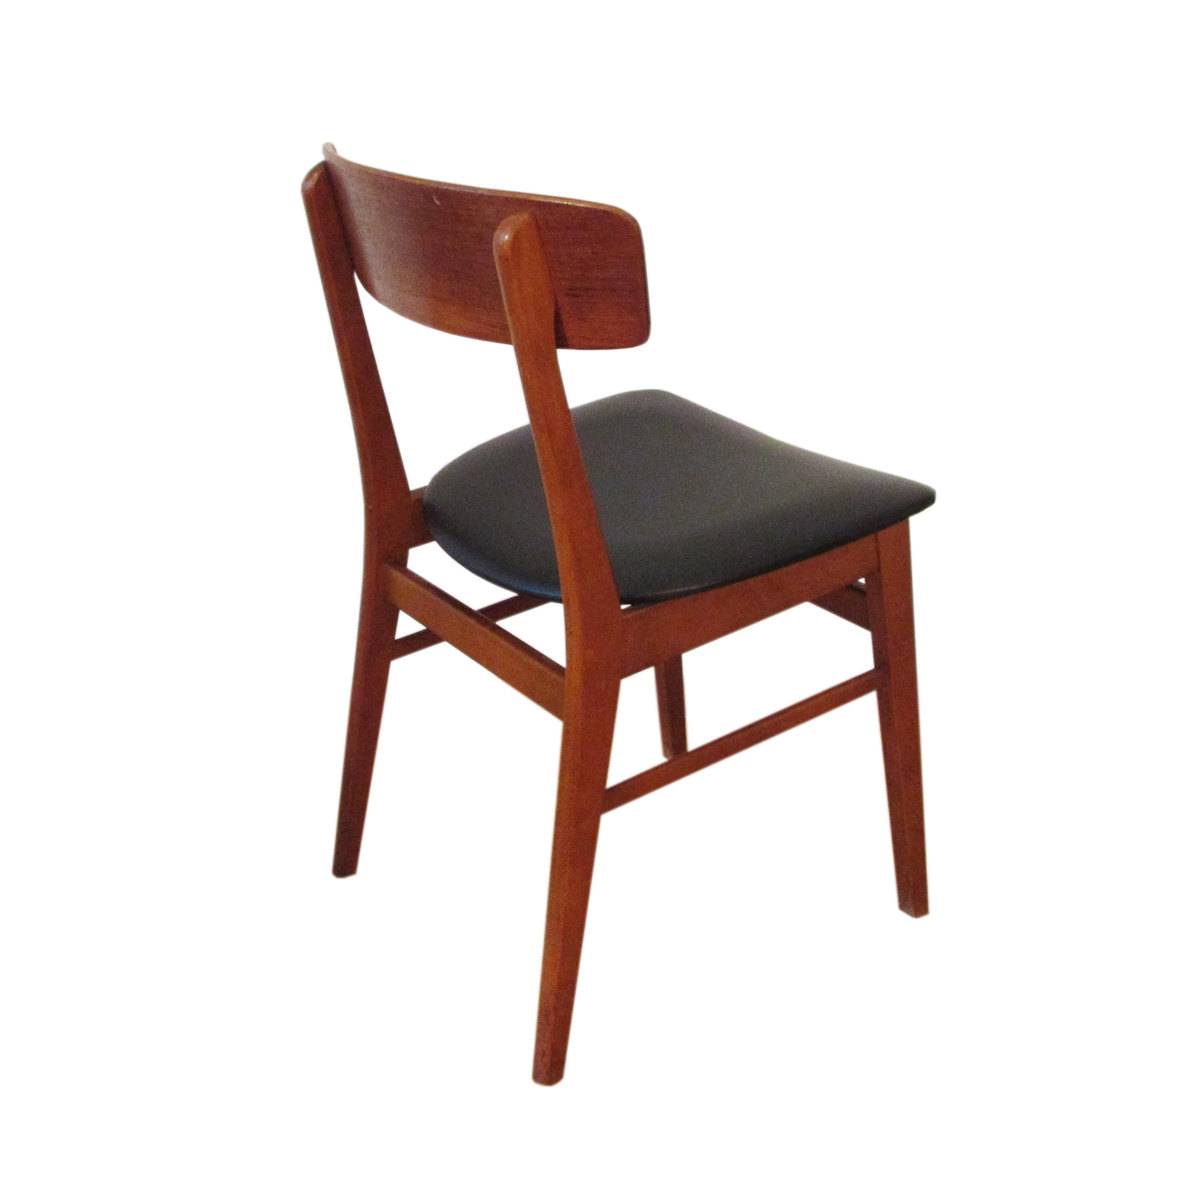 Teak Chair mid -century teak chair farstrup n° 211 – artichoke vintage furniture